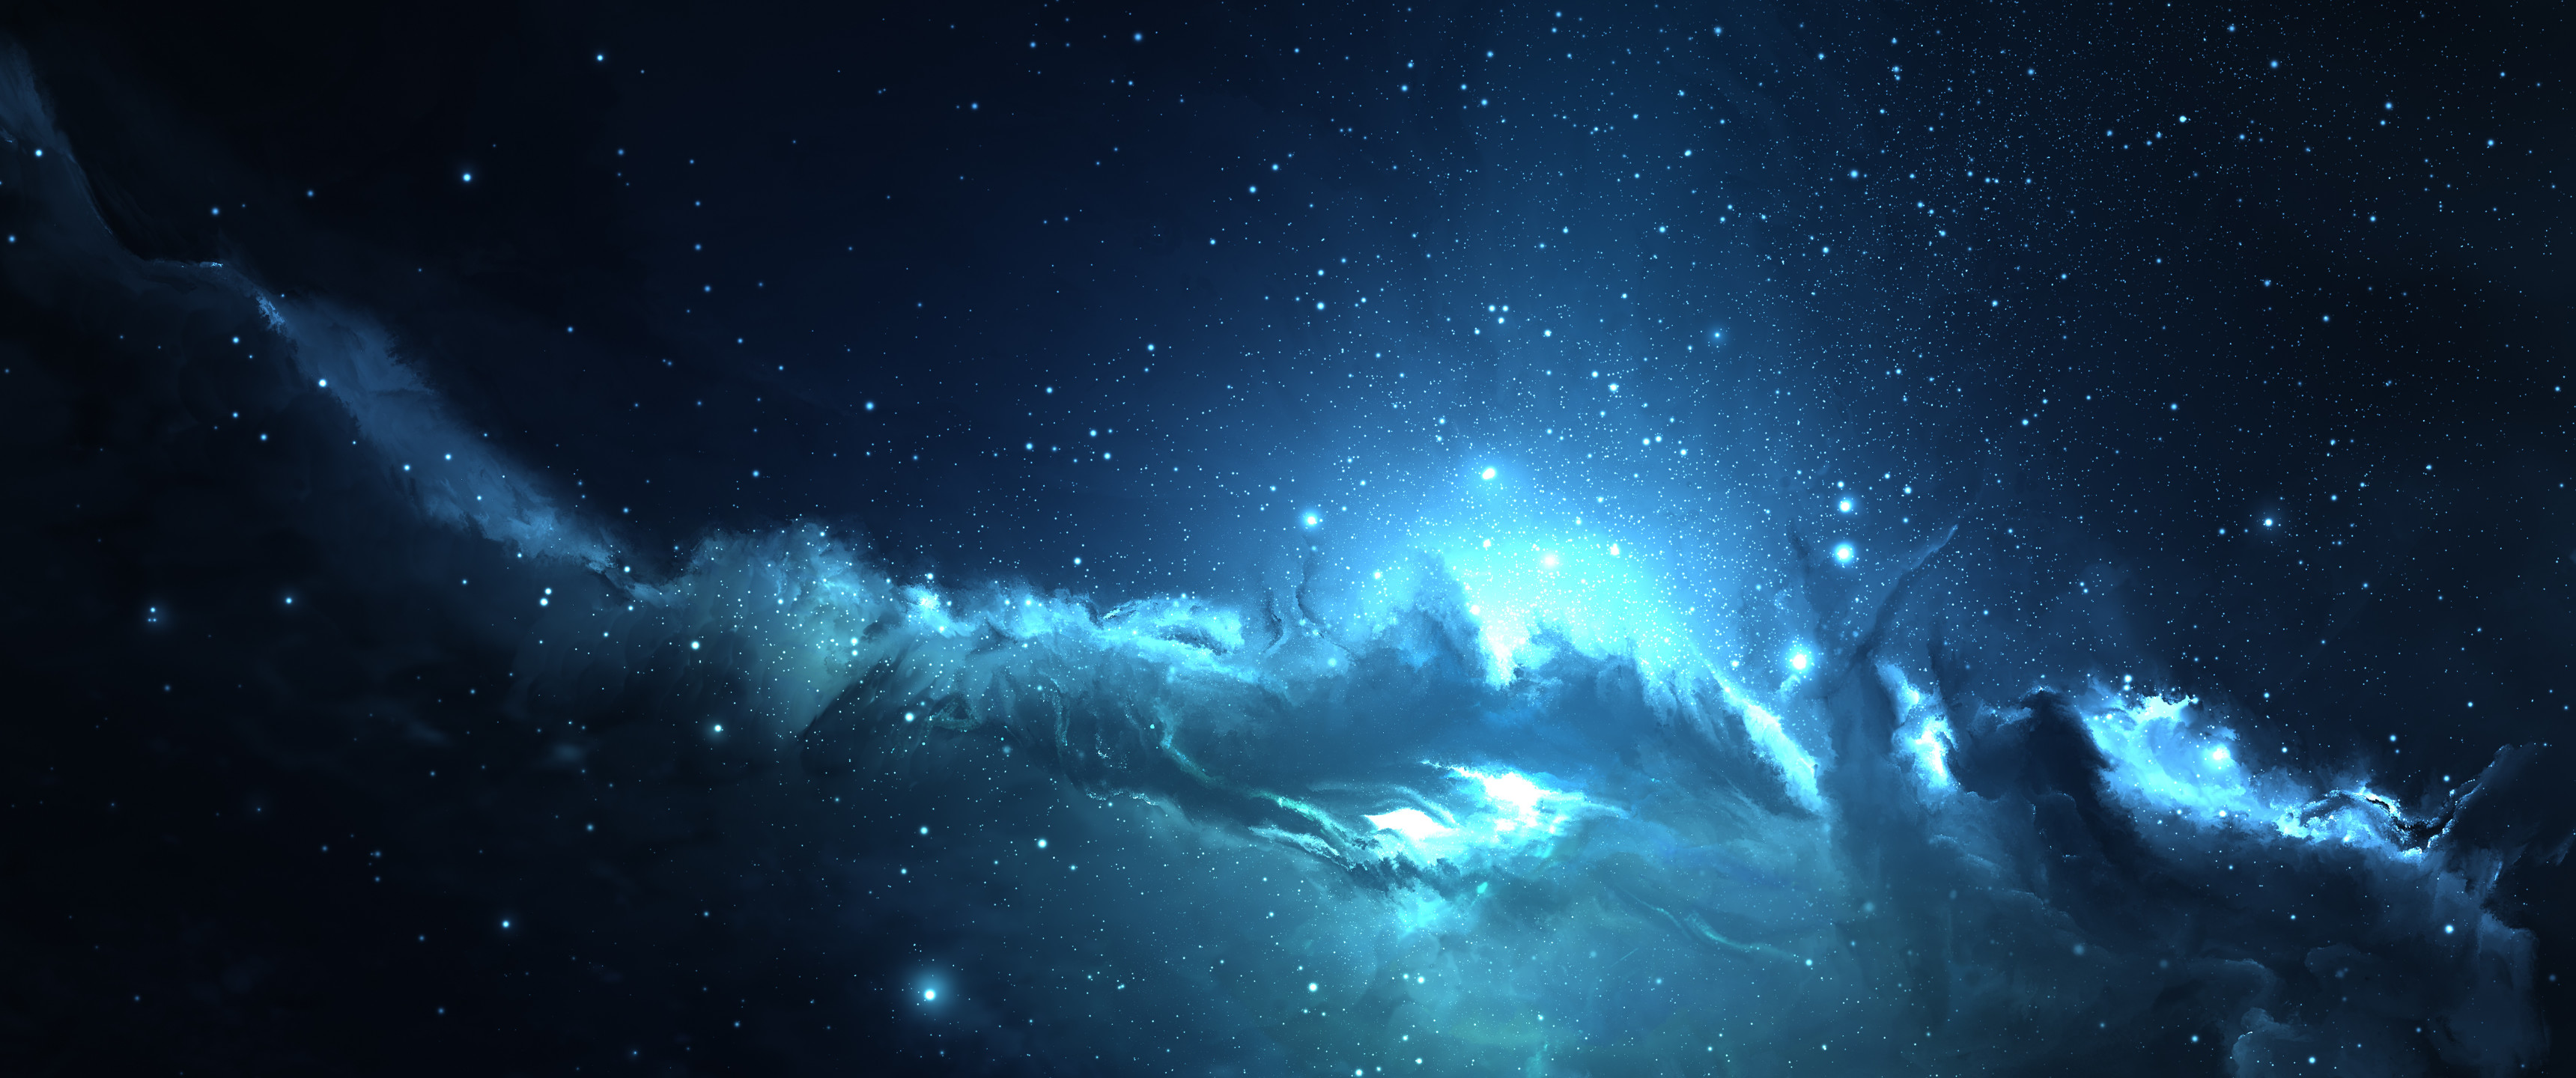 3440x1440 ... Astrophotography, Space, Blue Wallpapers HD Desktop .